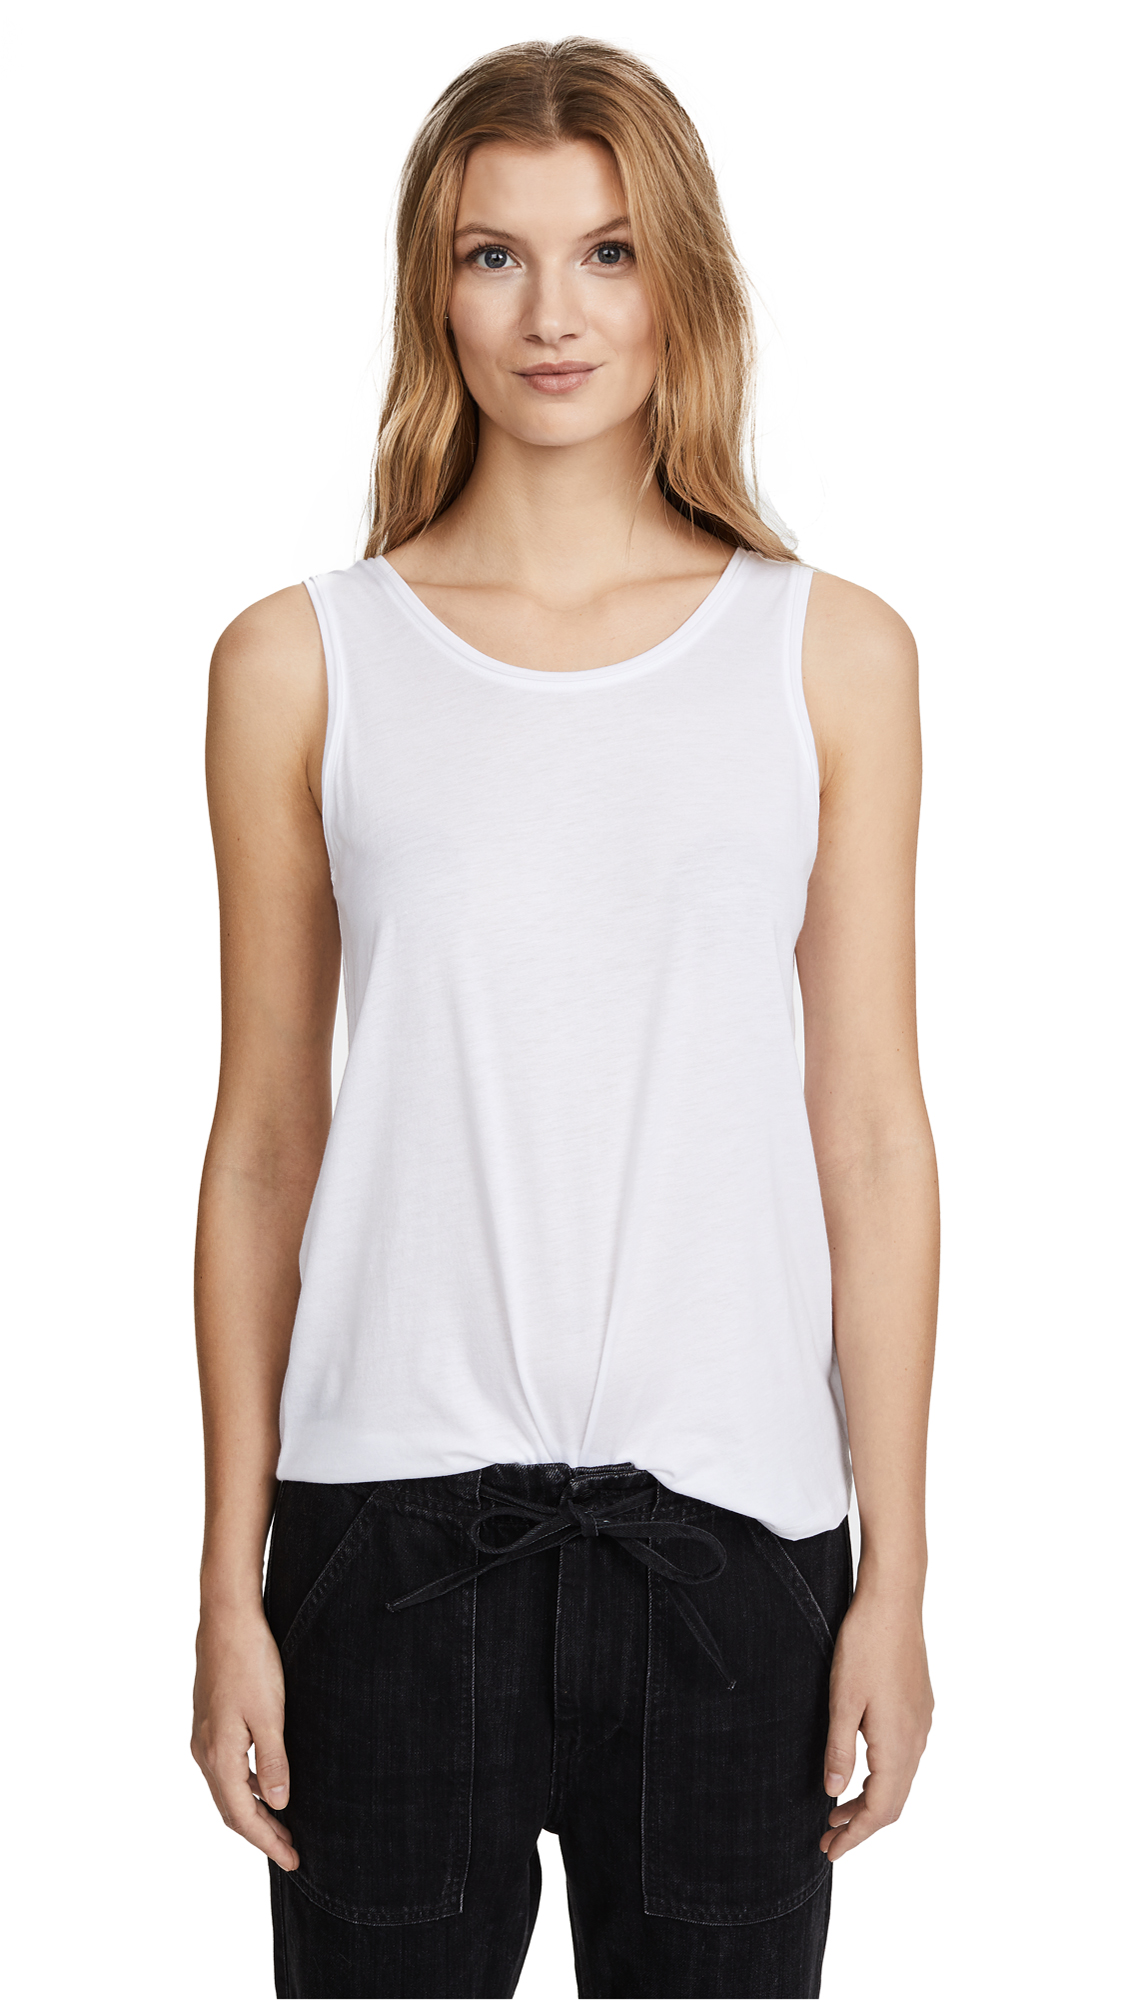 Theory Insar 2 Tank Top - White